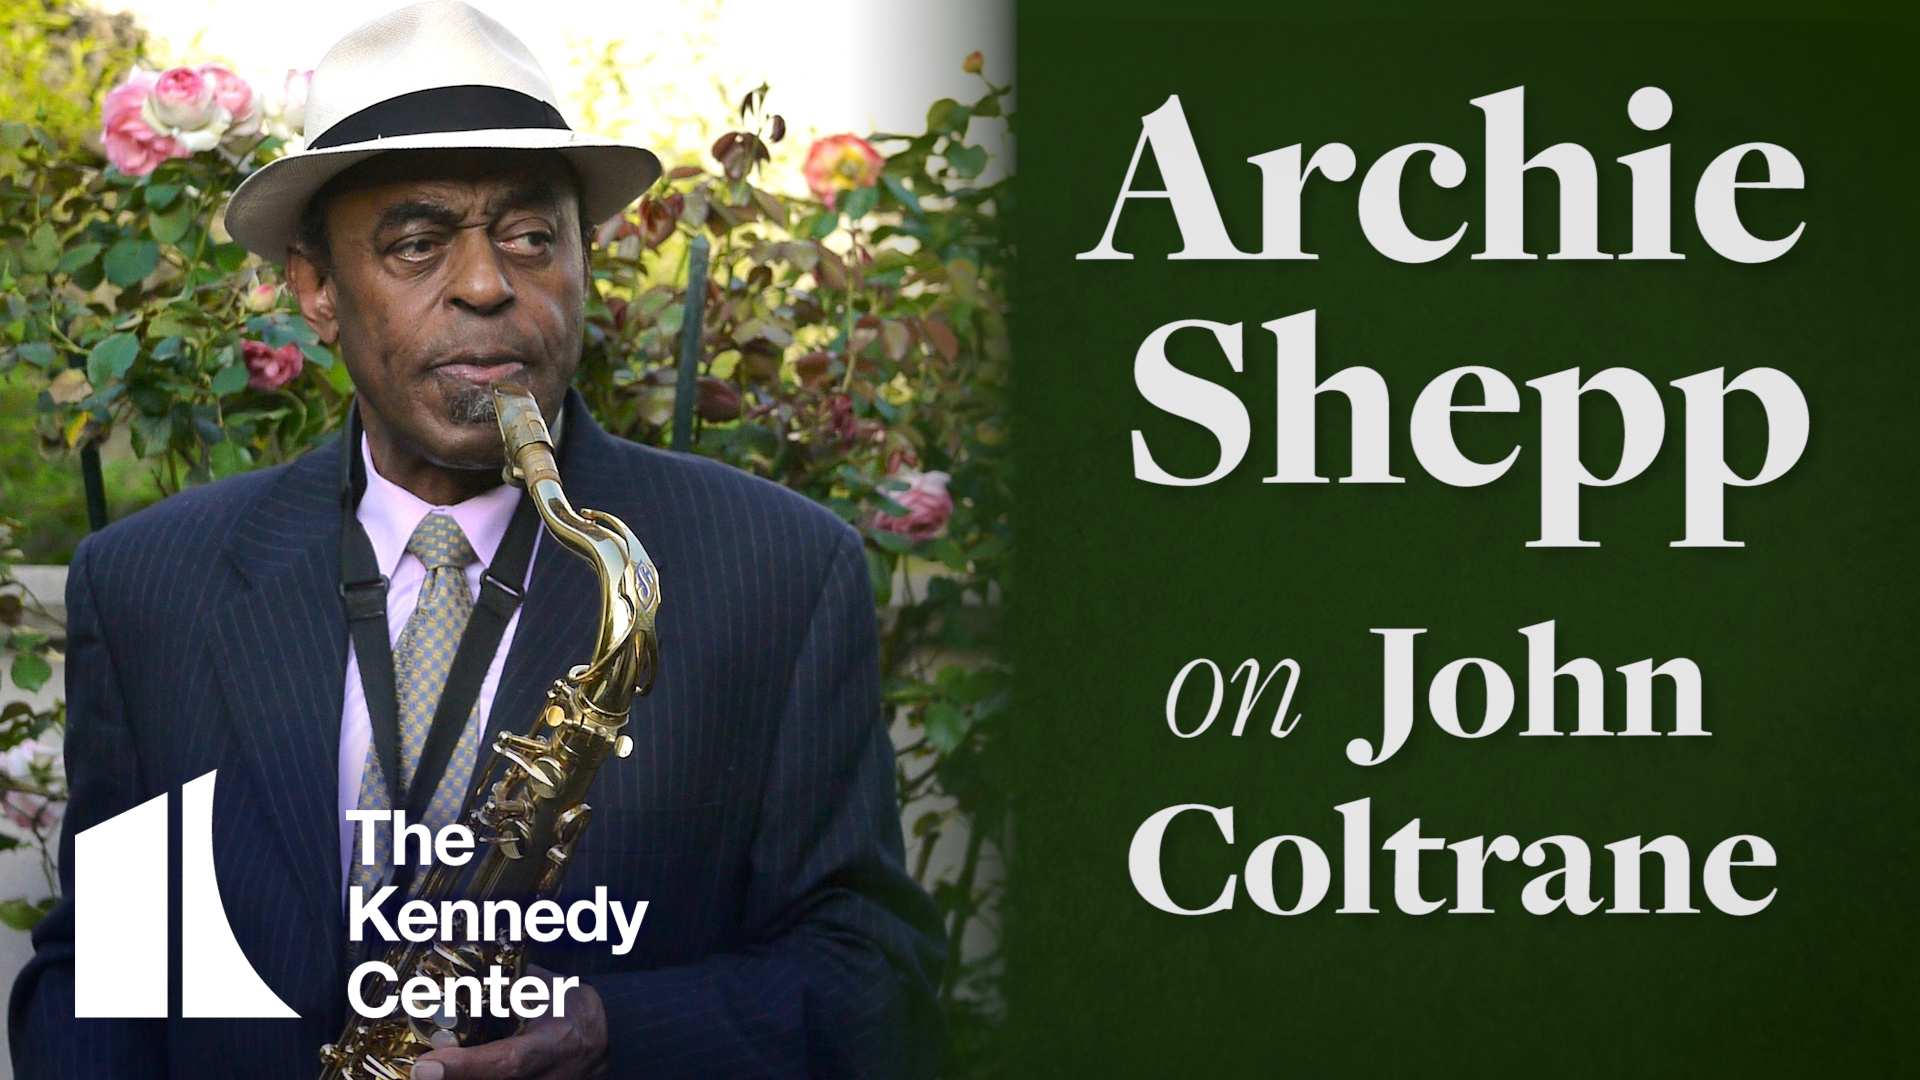 NEA Jazz Master Archie Shepp on John Coltrane | The Kennedy Center